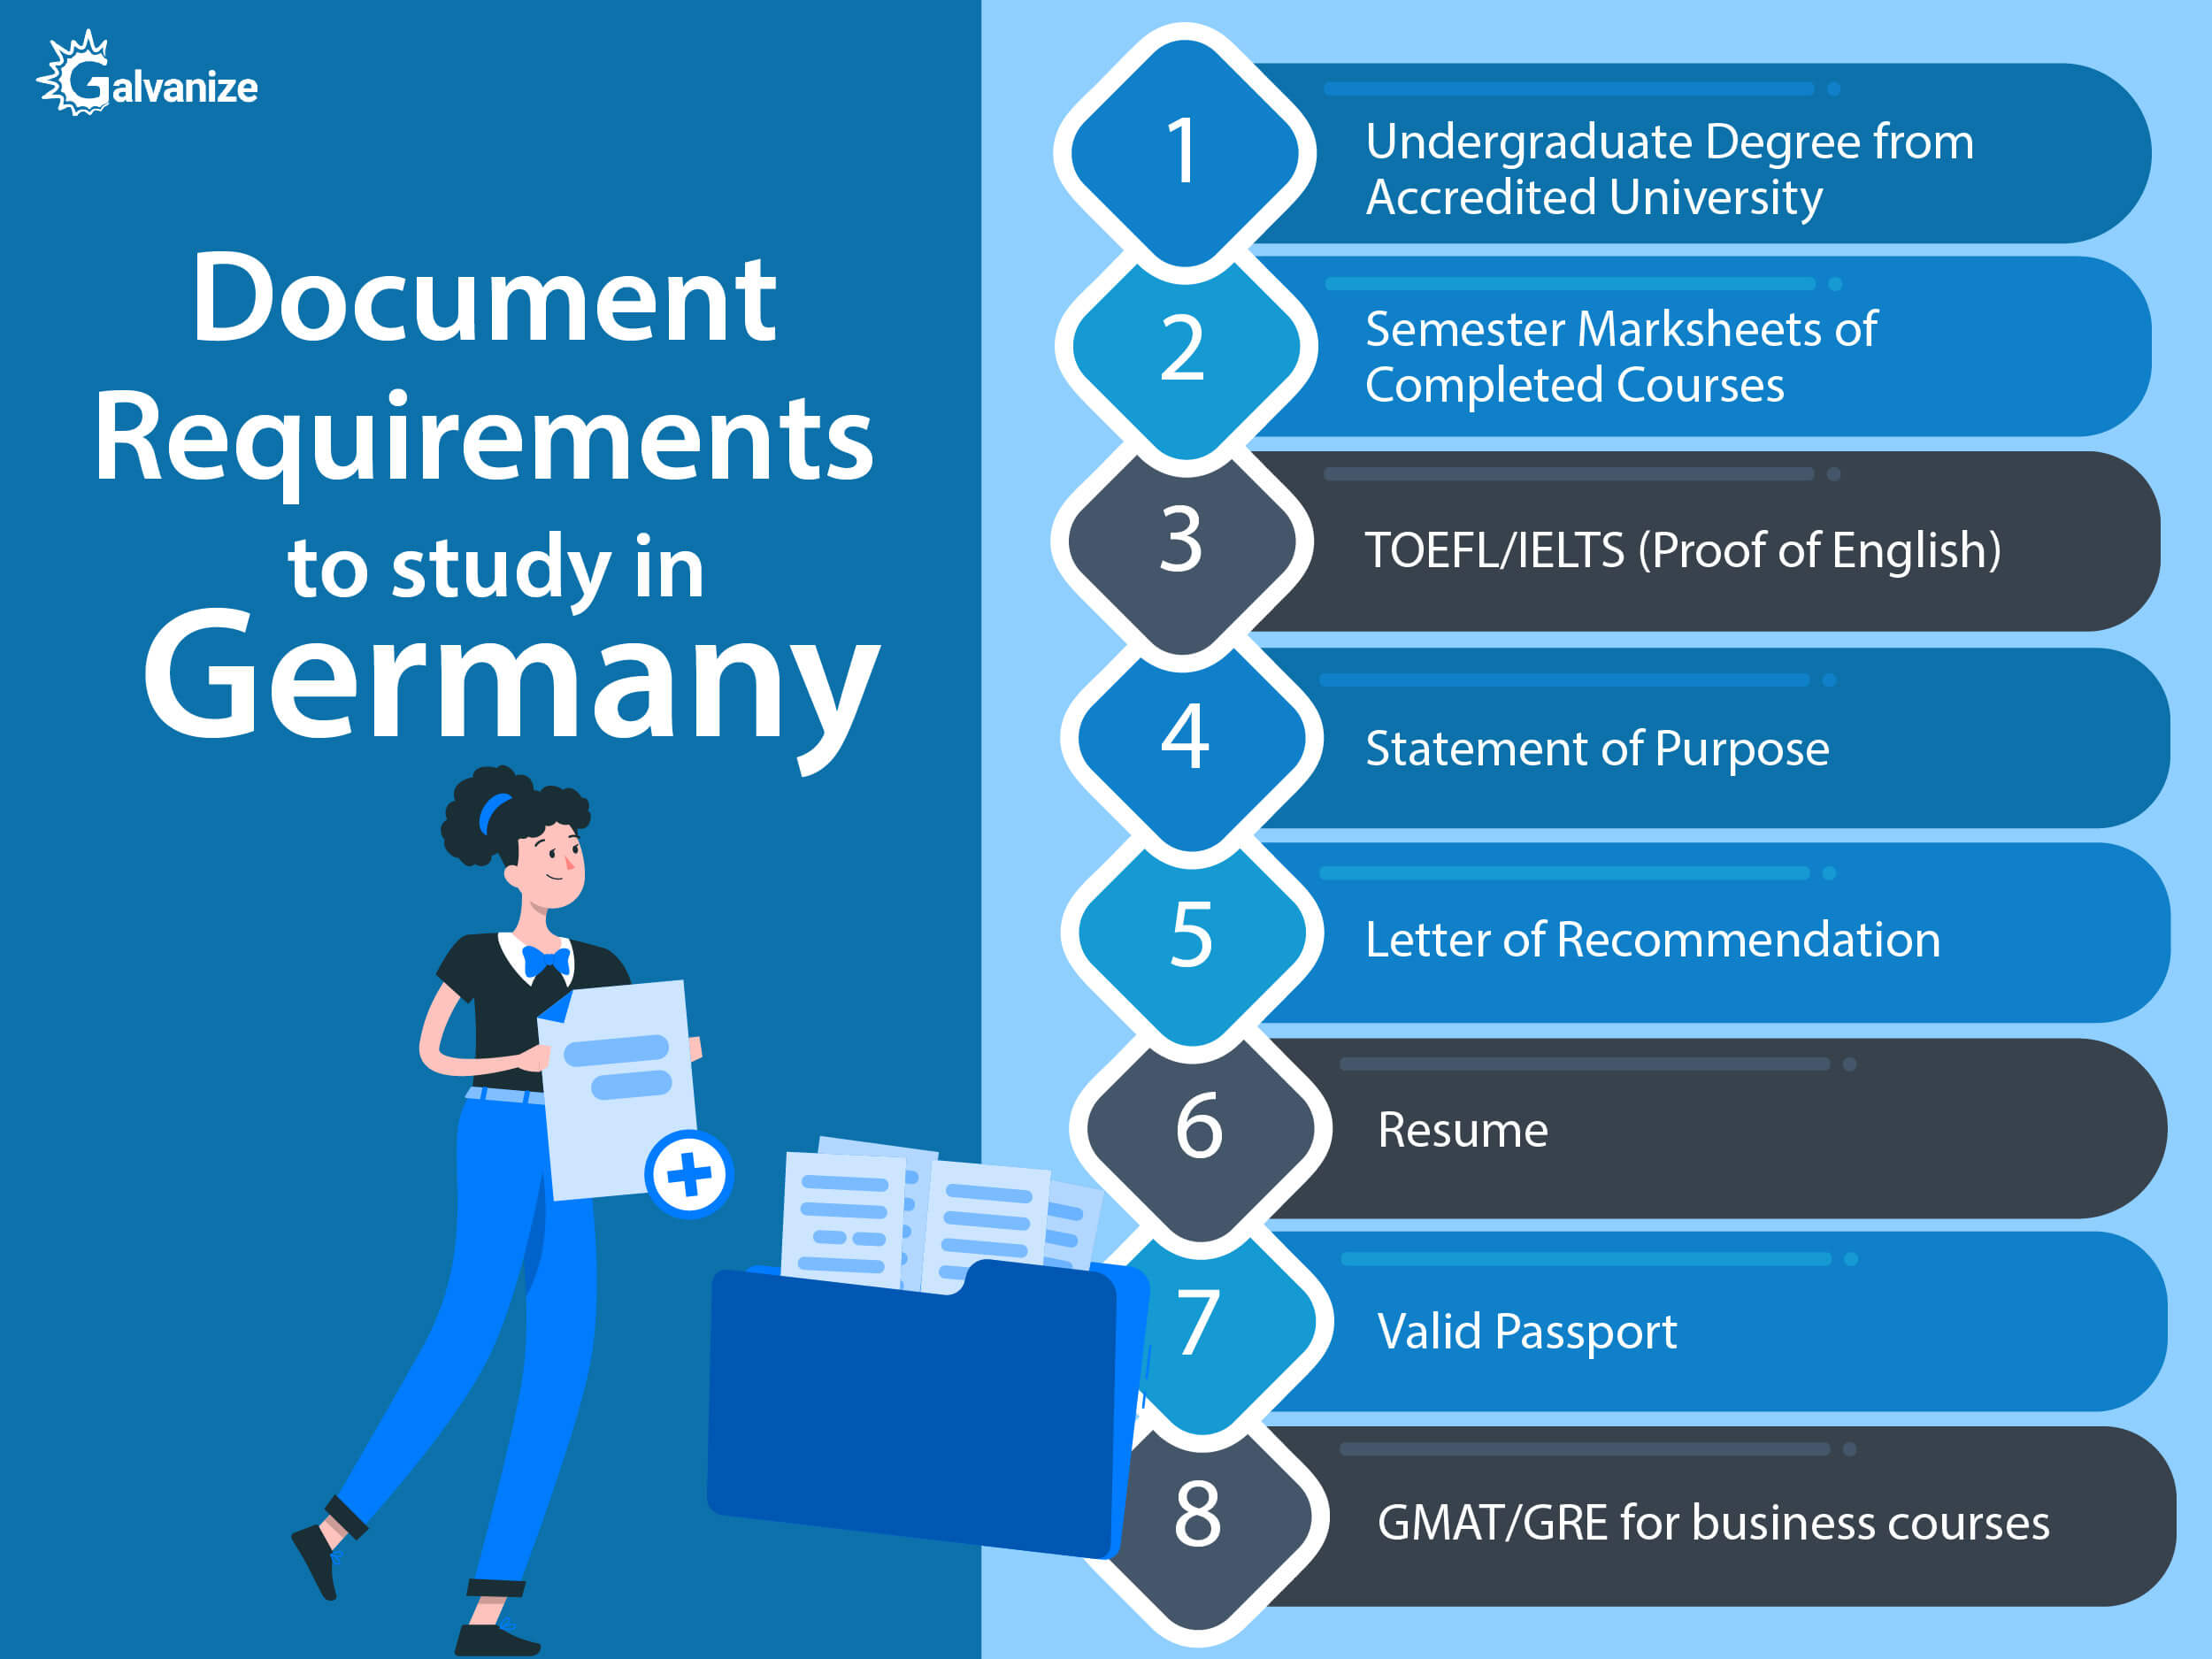 Documents required to study in Germany | Admission Requirements Germany